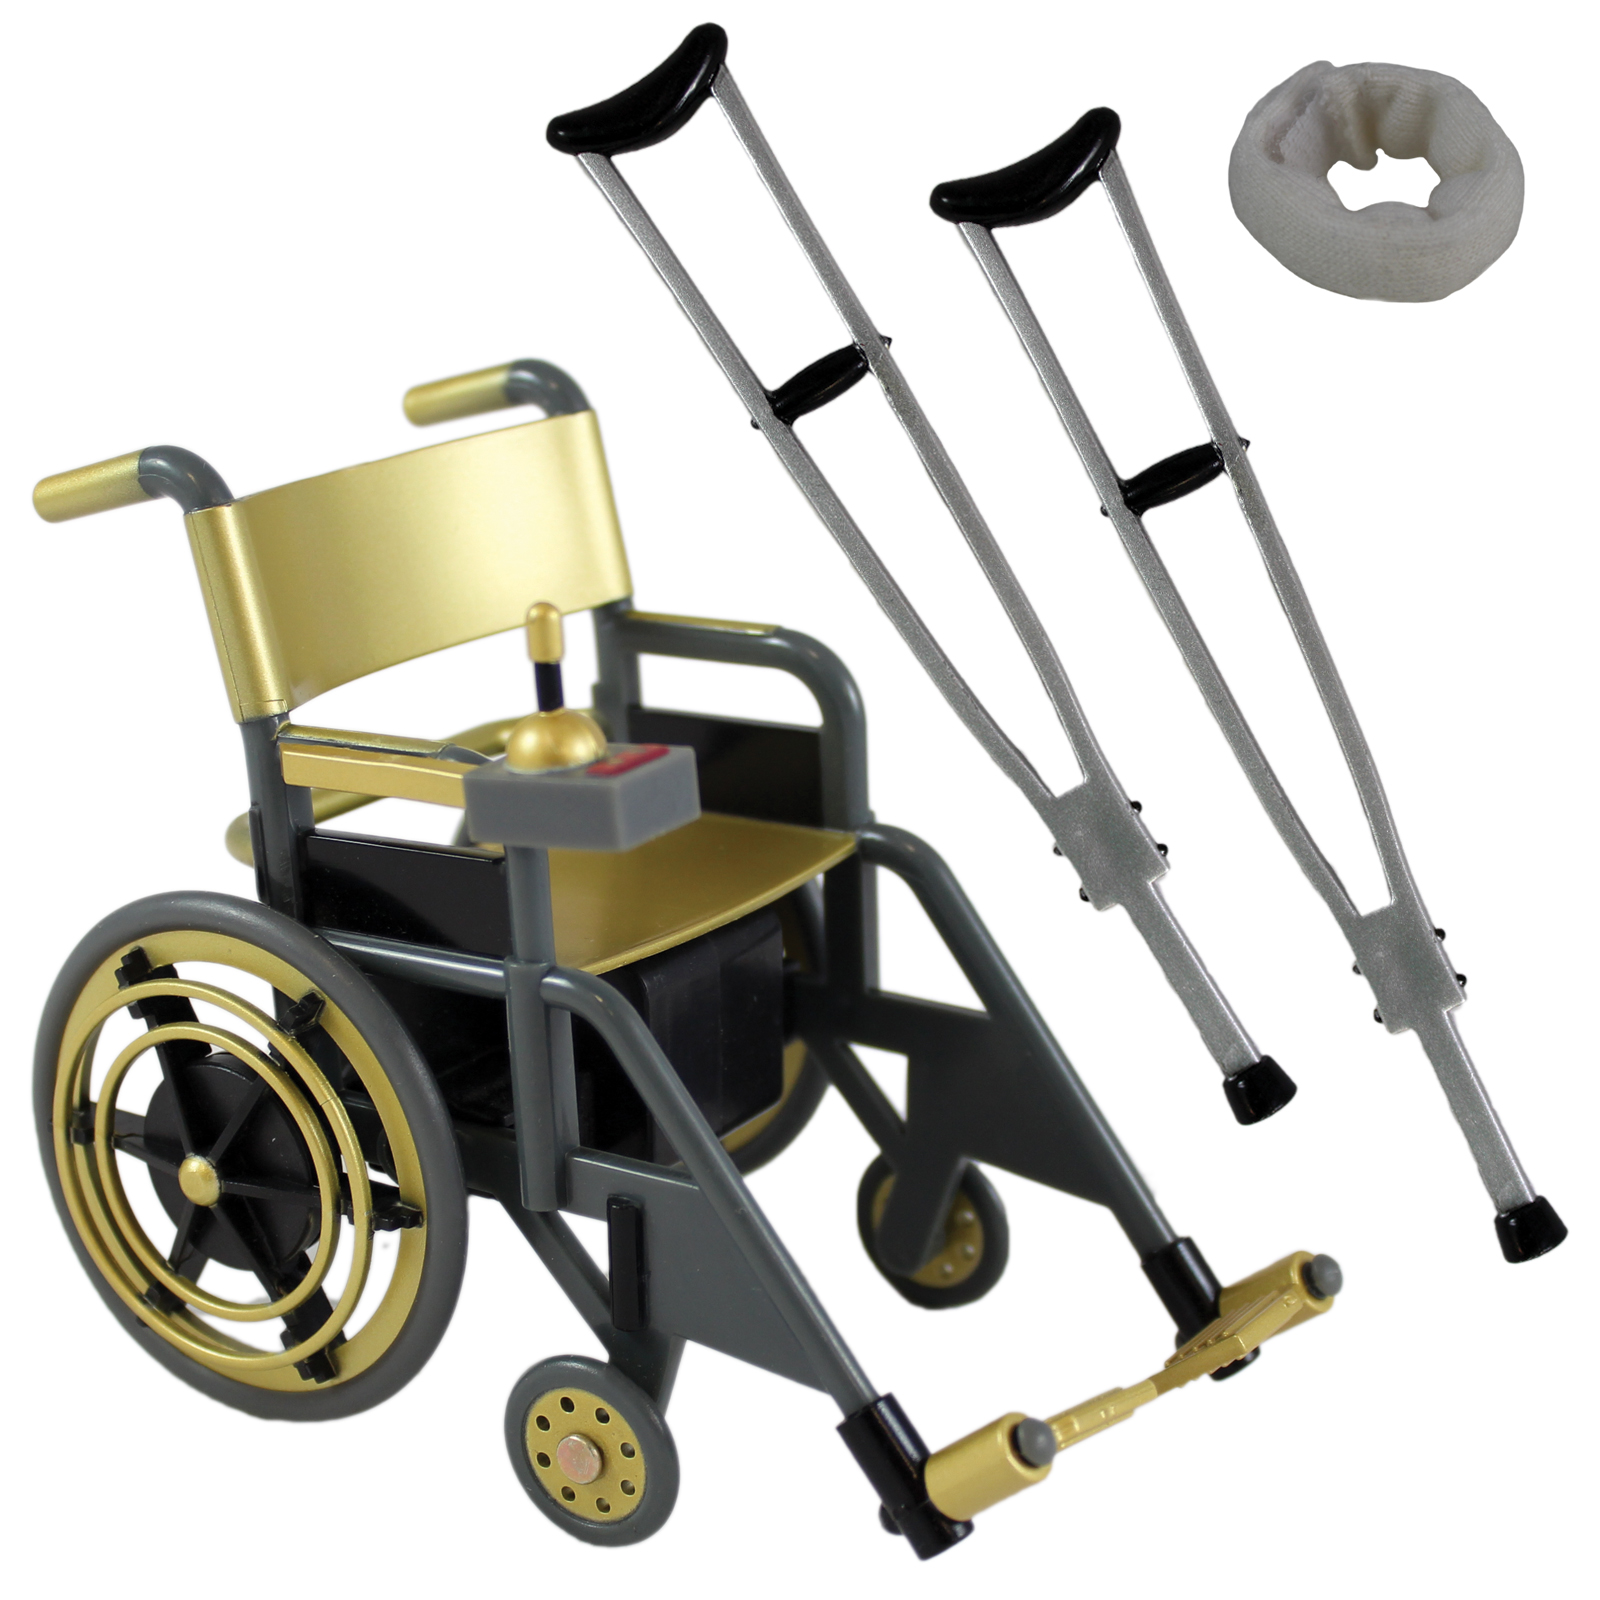 Wheelchair Playset (Gold) - Ringside Collectibles Exclusive Toy Wrestling Action Figure Accessories